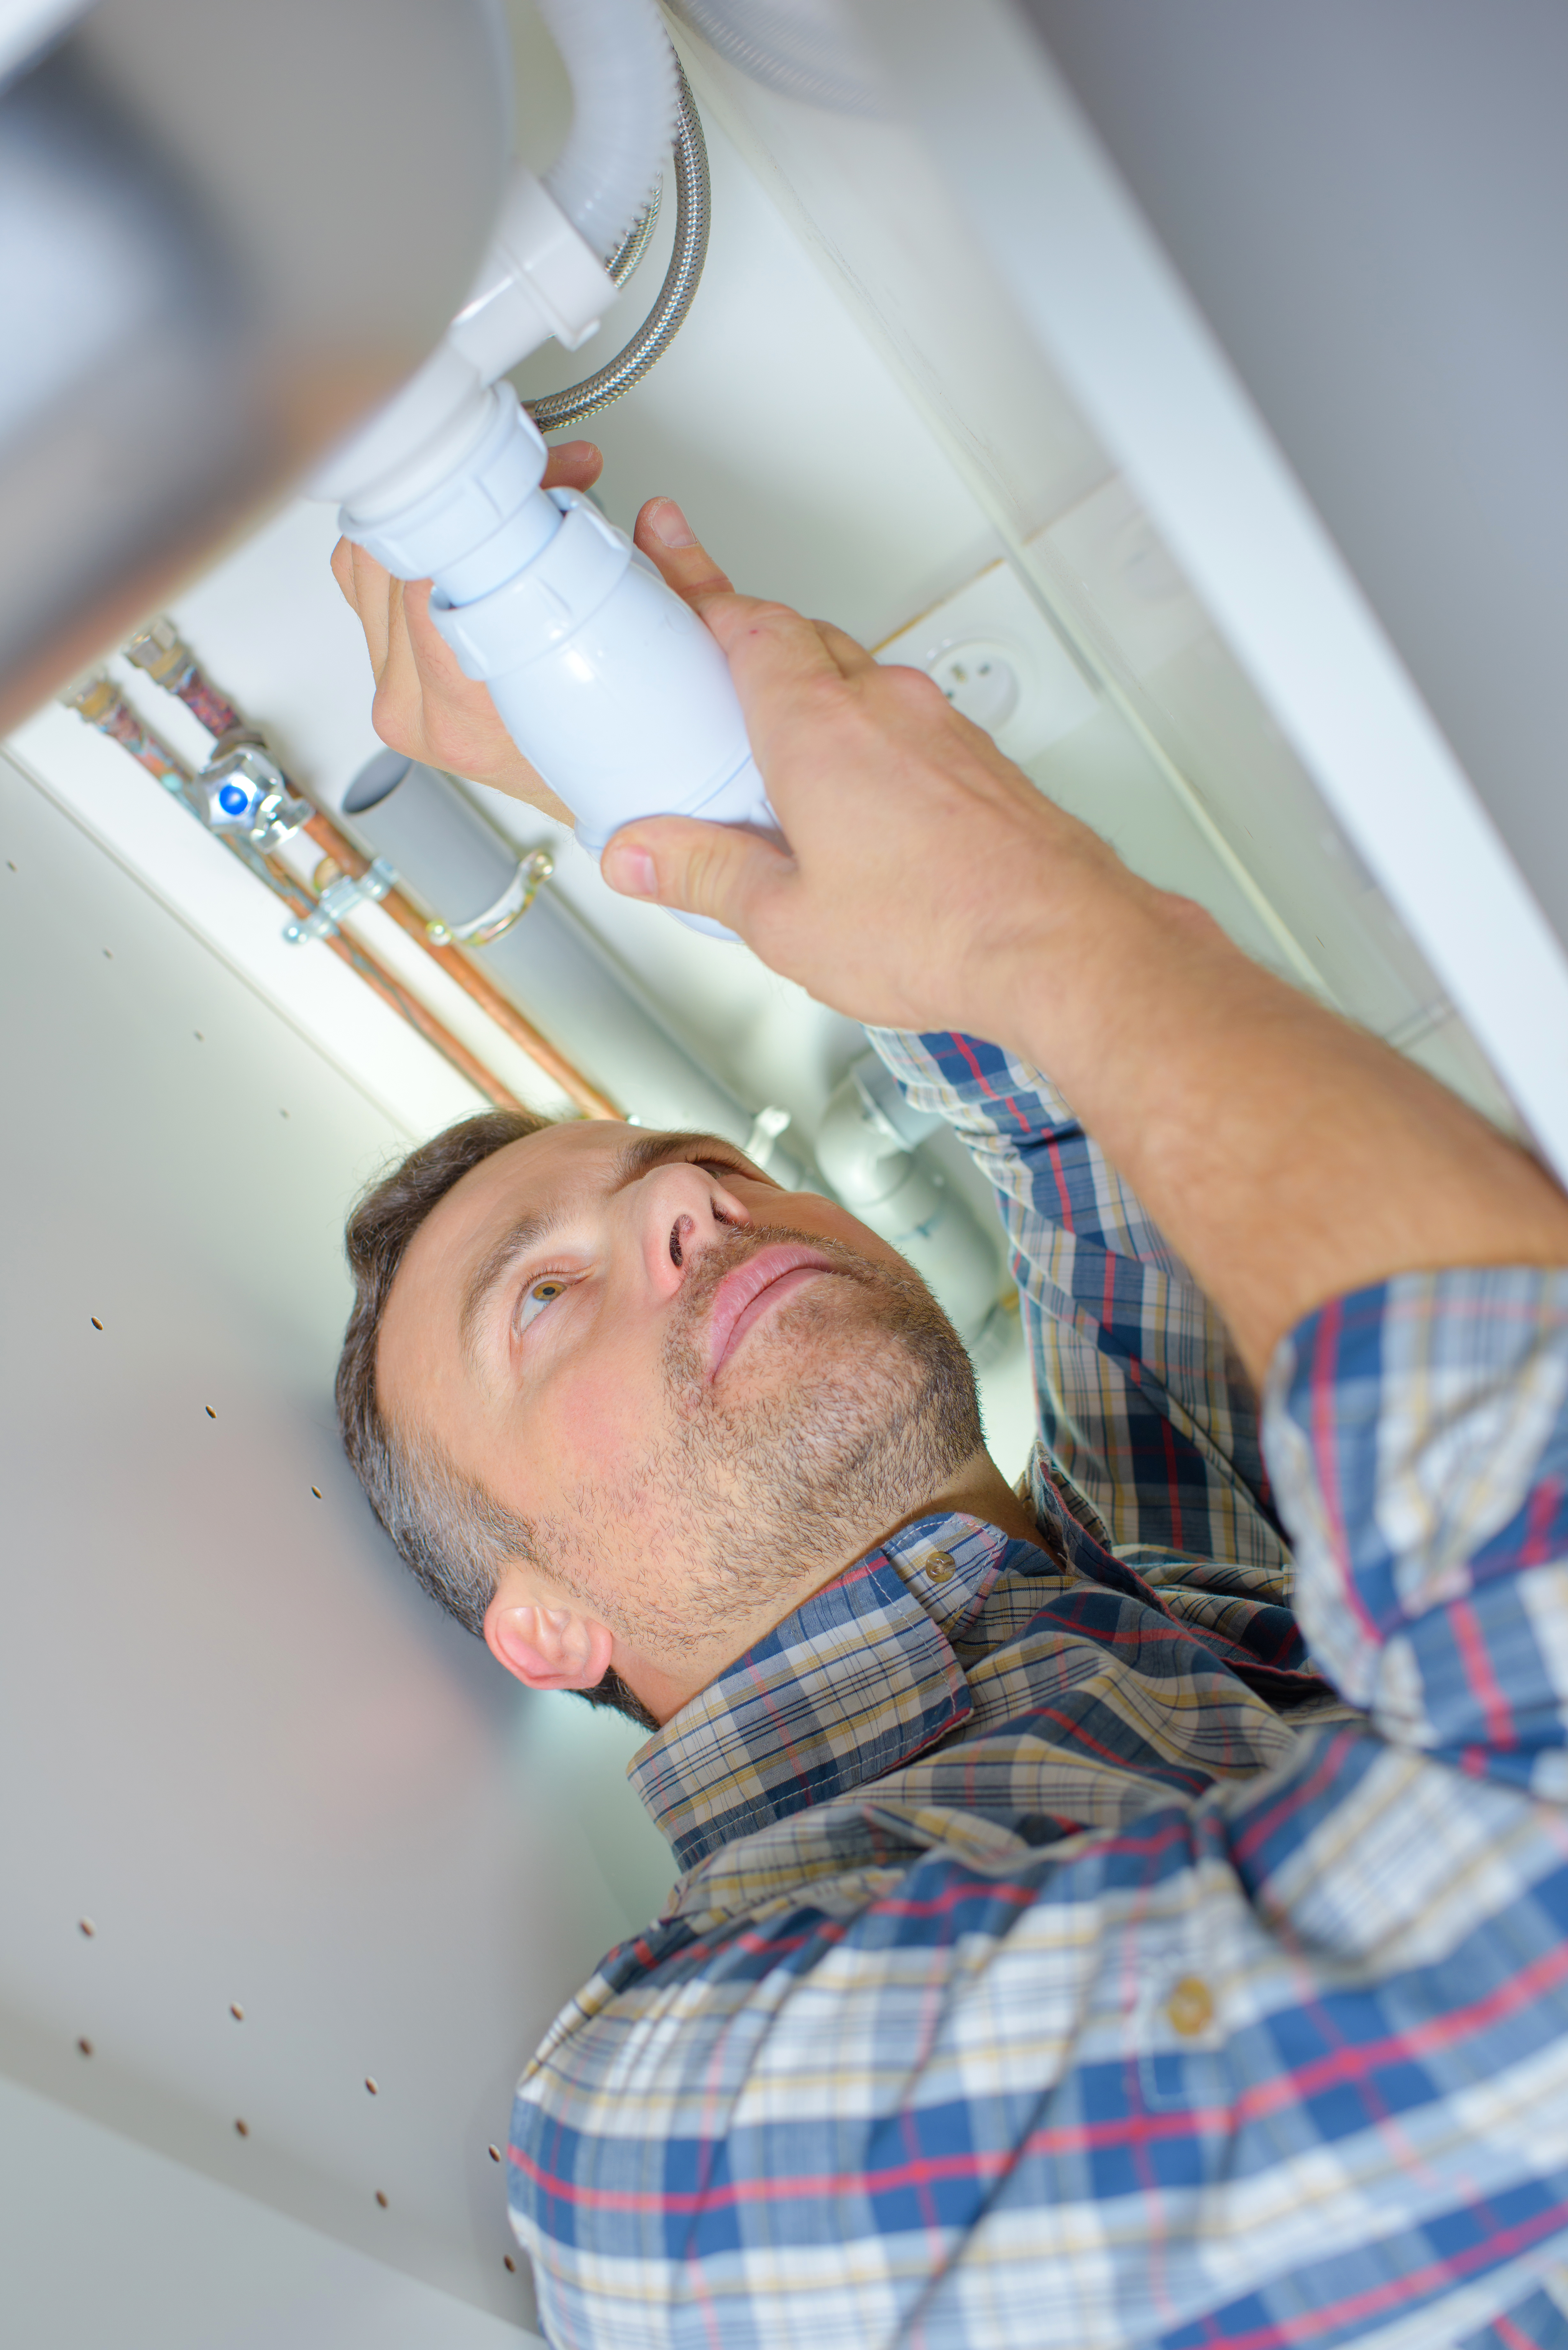 Plumber working on a plastic pipe